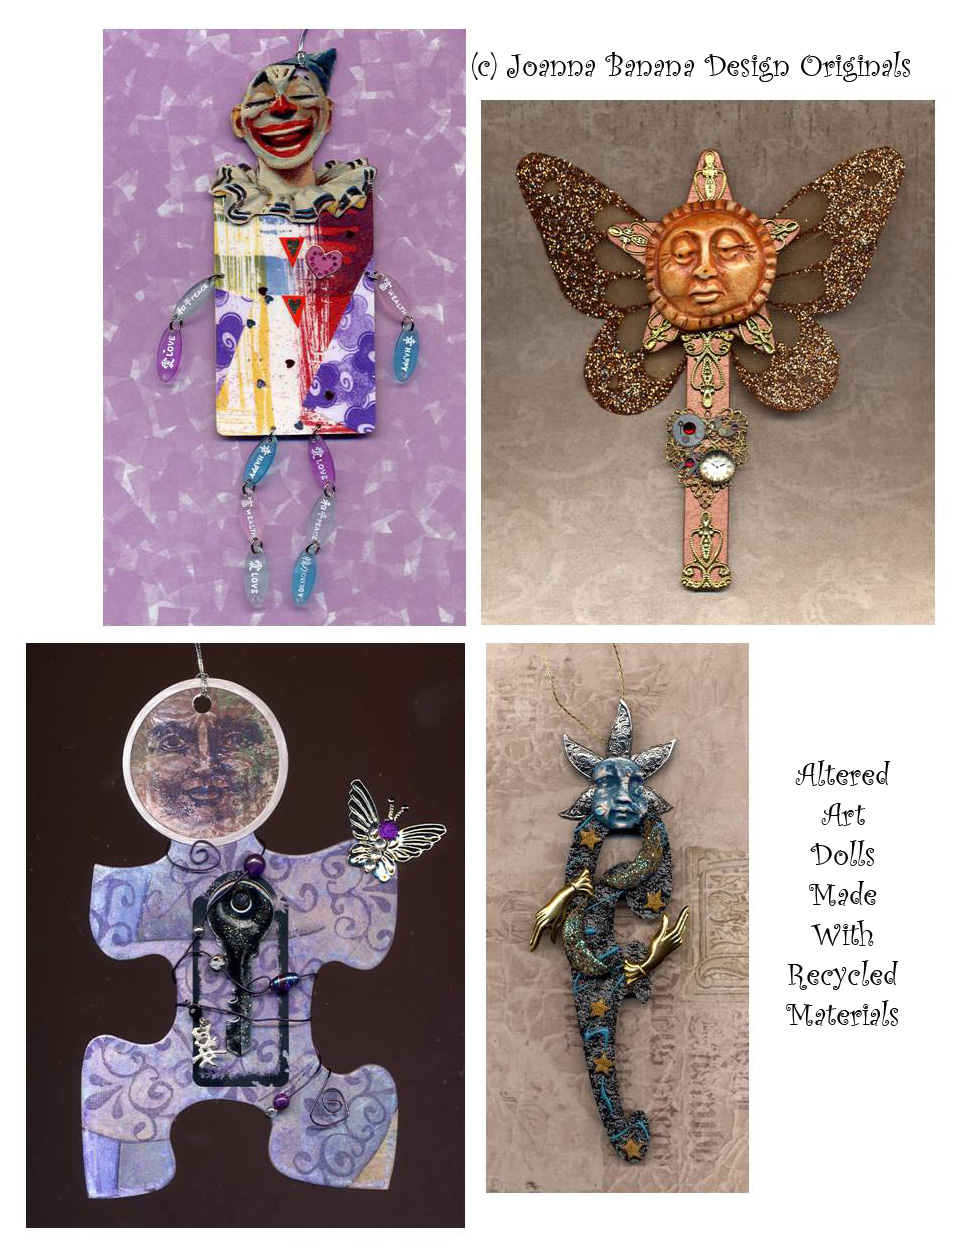 Altered Art Dolls From Recycled Materials Joanna Banana